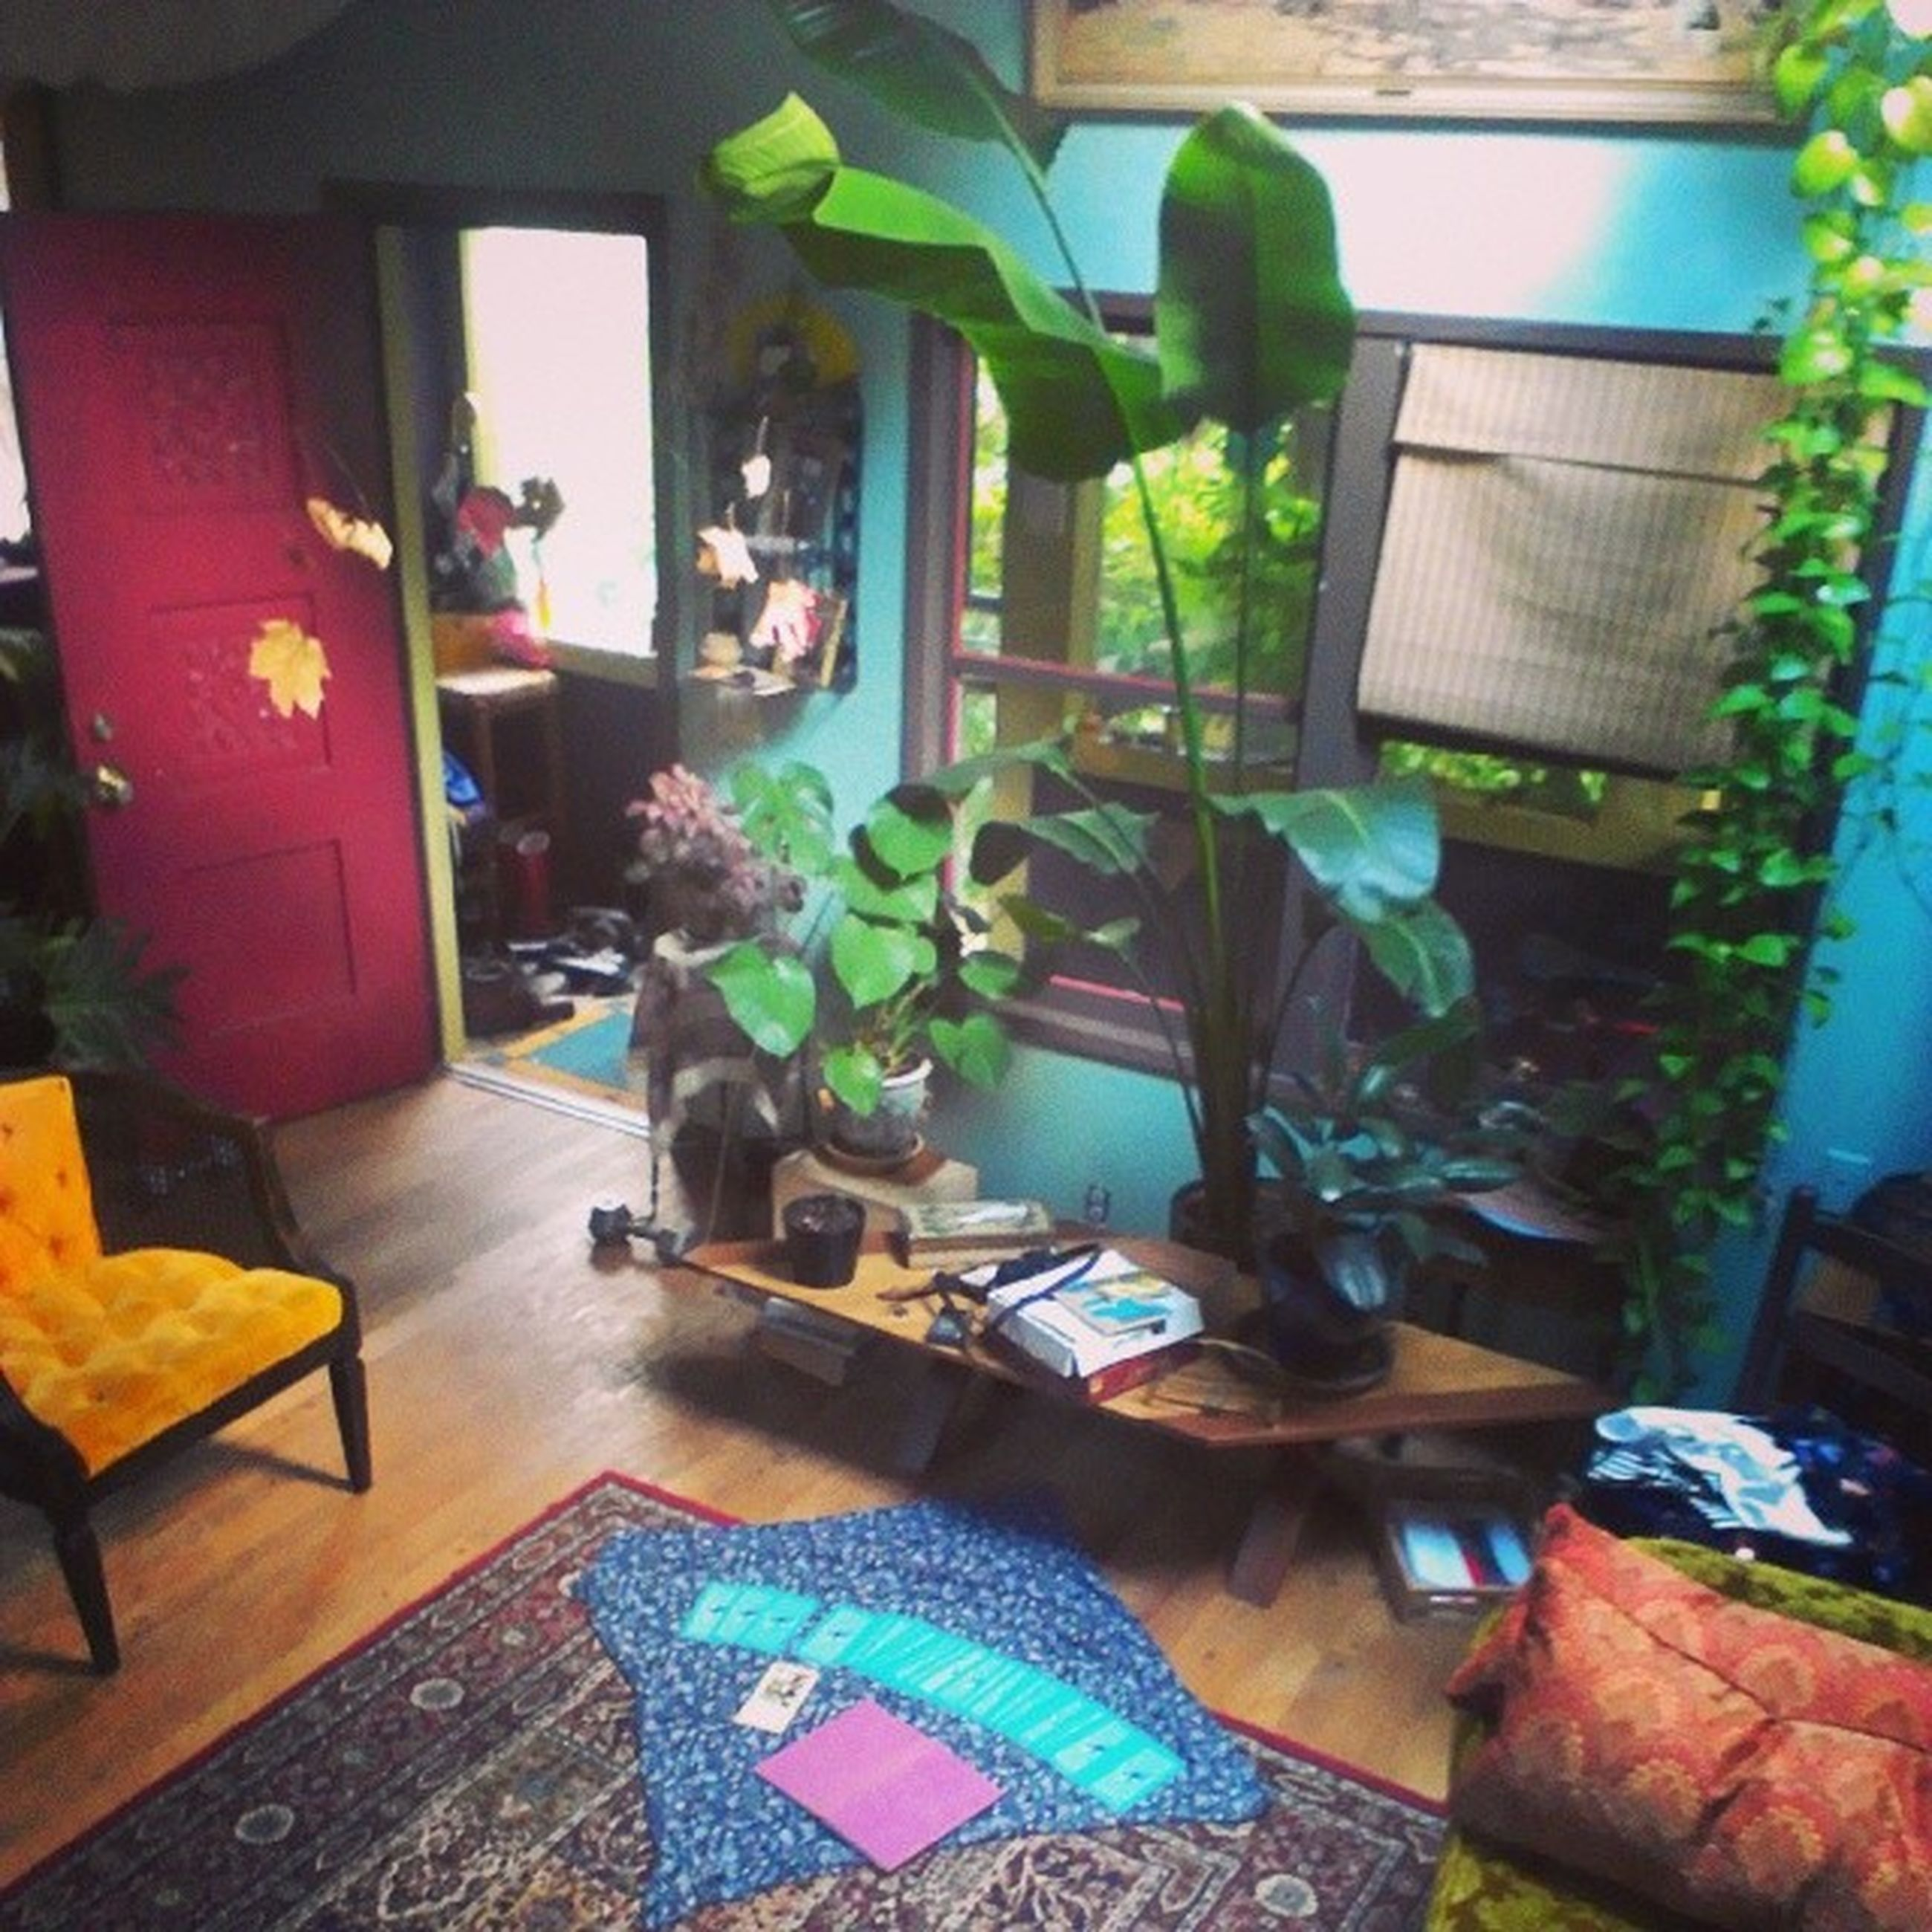 indoors, table, chair, home interior, absence, potted plant, house, furniture, empty, wood - material, built structure, window, sofa, architecture, day, domestic room, no people, sunlight, wall - building feature, high angle view